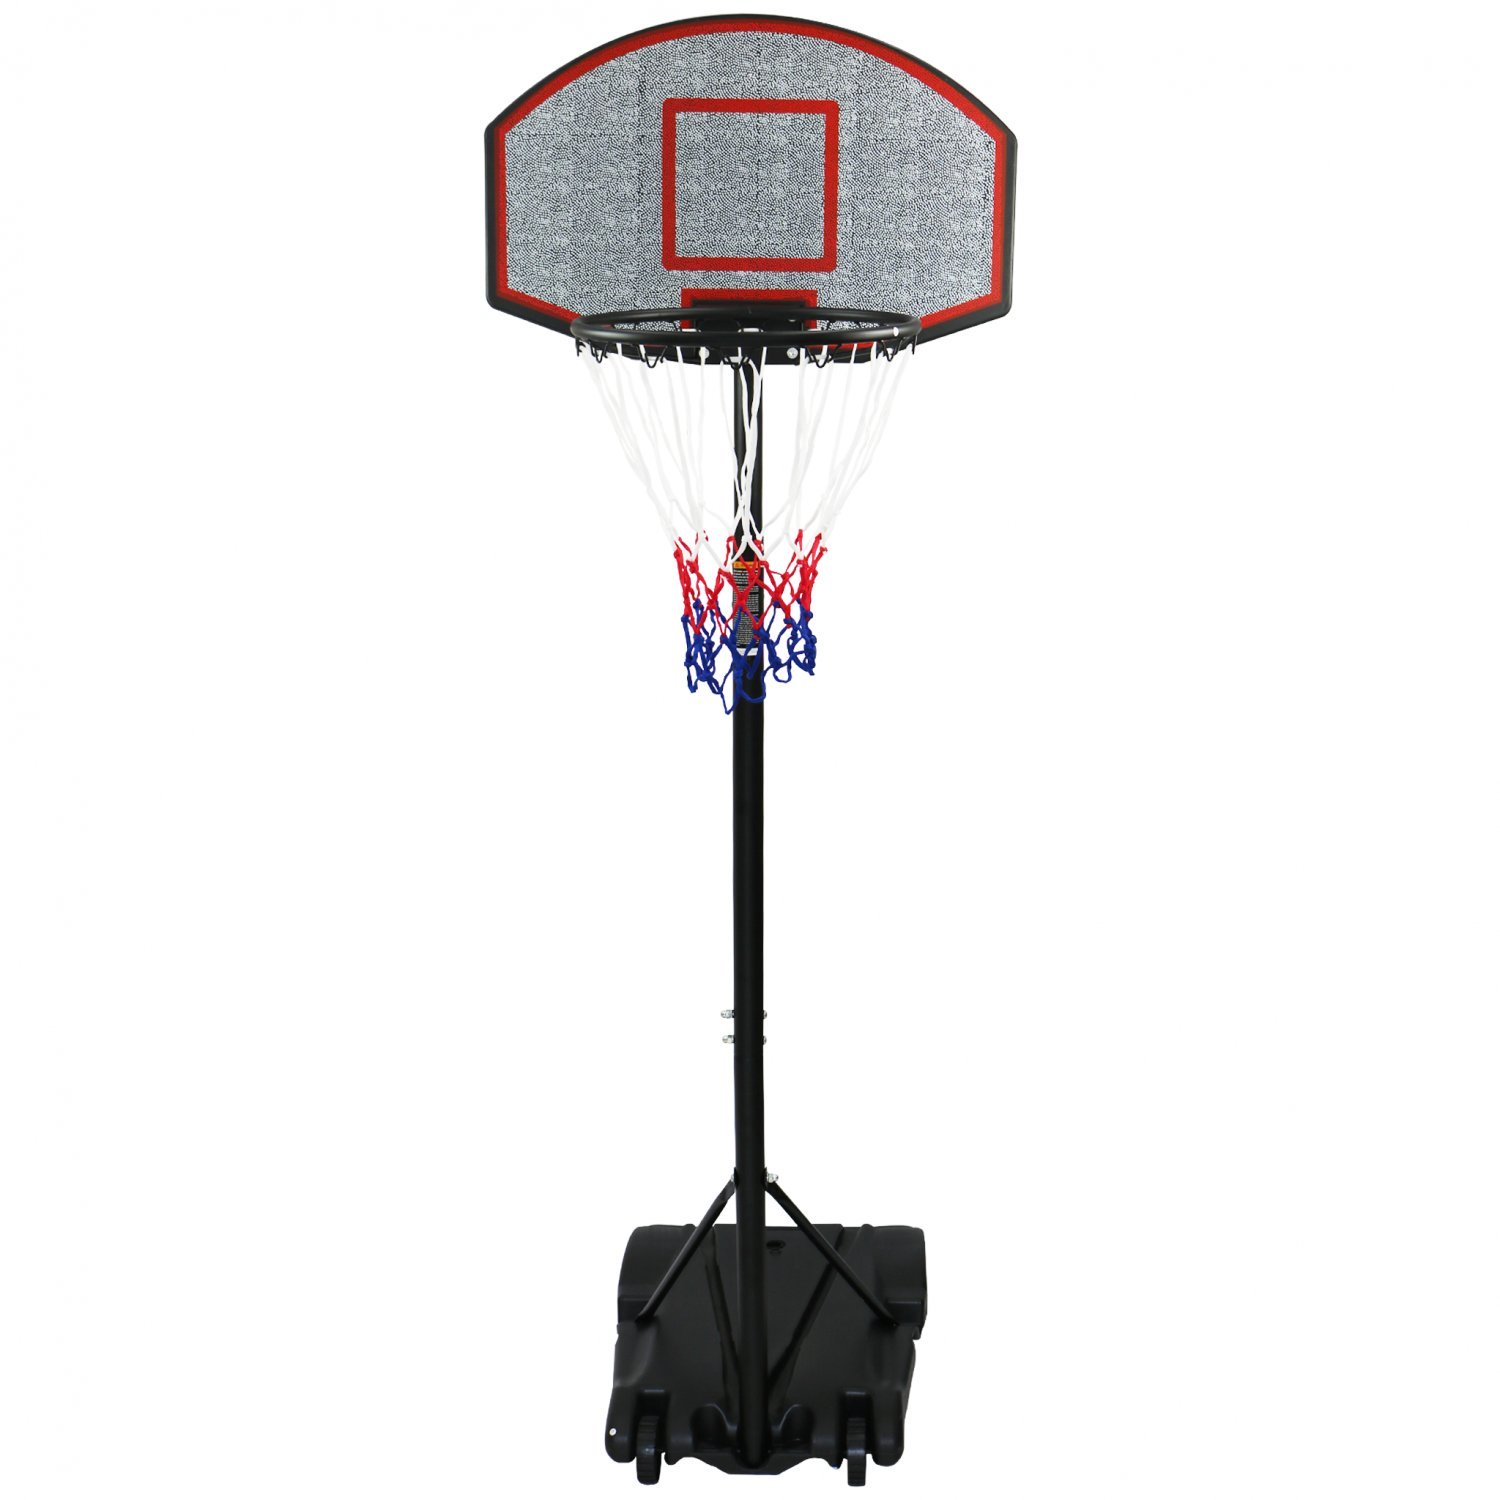 (RL72) Professional Kids Adjustable Portable Basketball Net 1.7m - 2.1m Any true basketball ... - Image 2 of 2